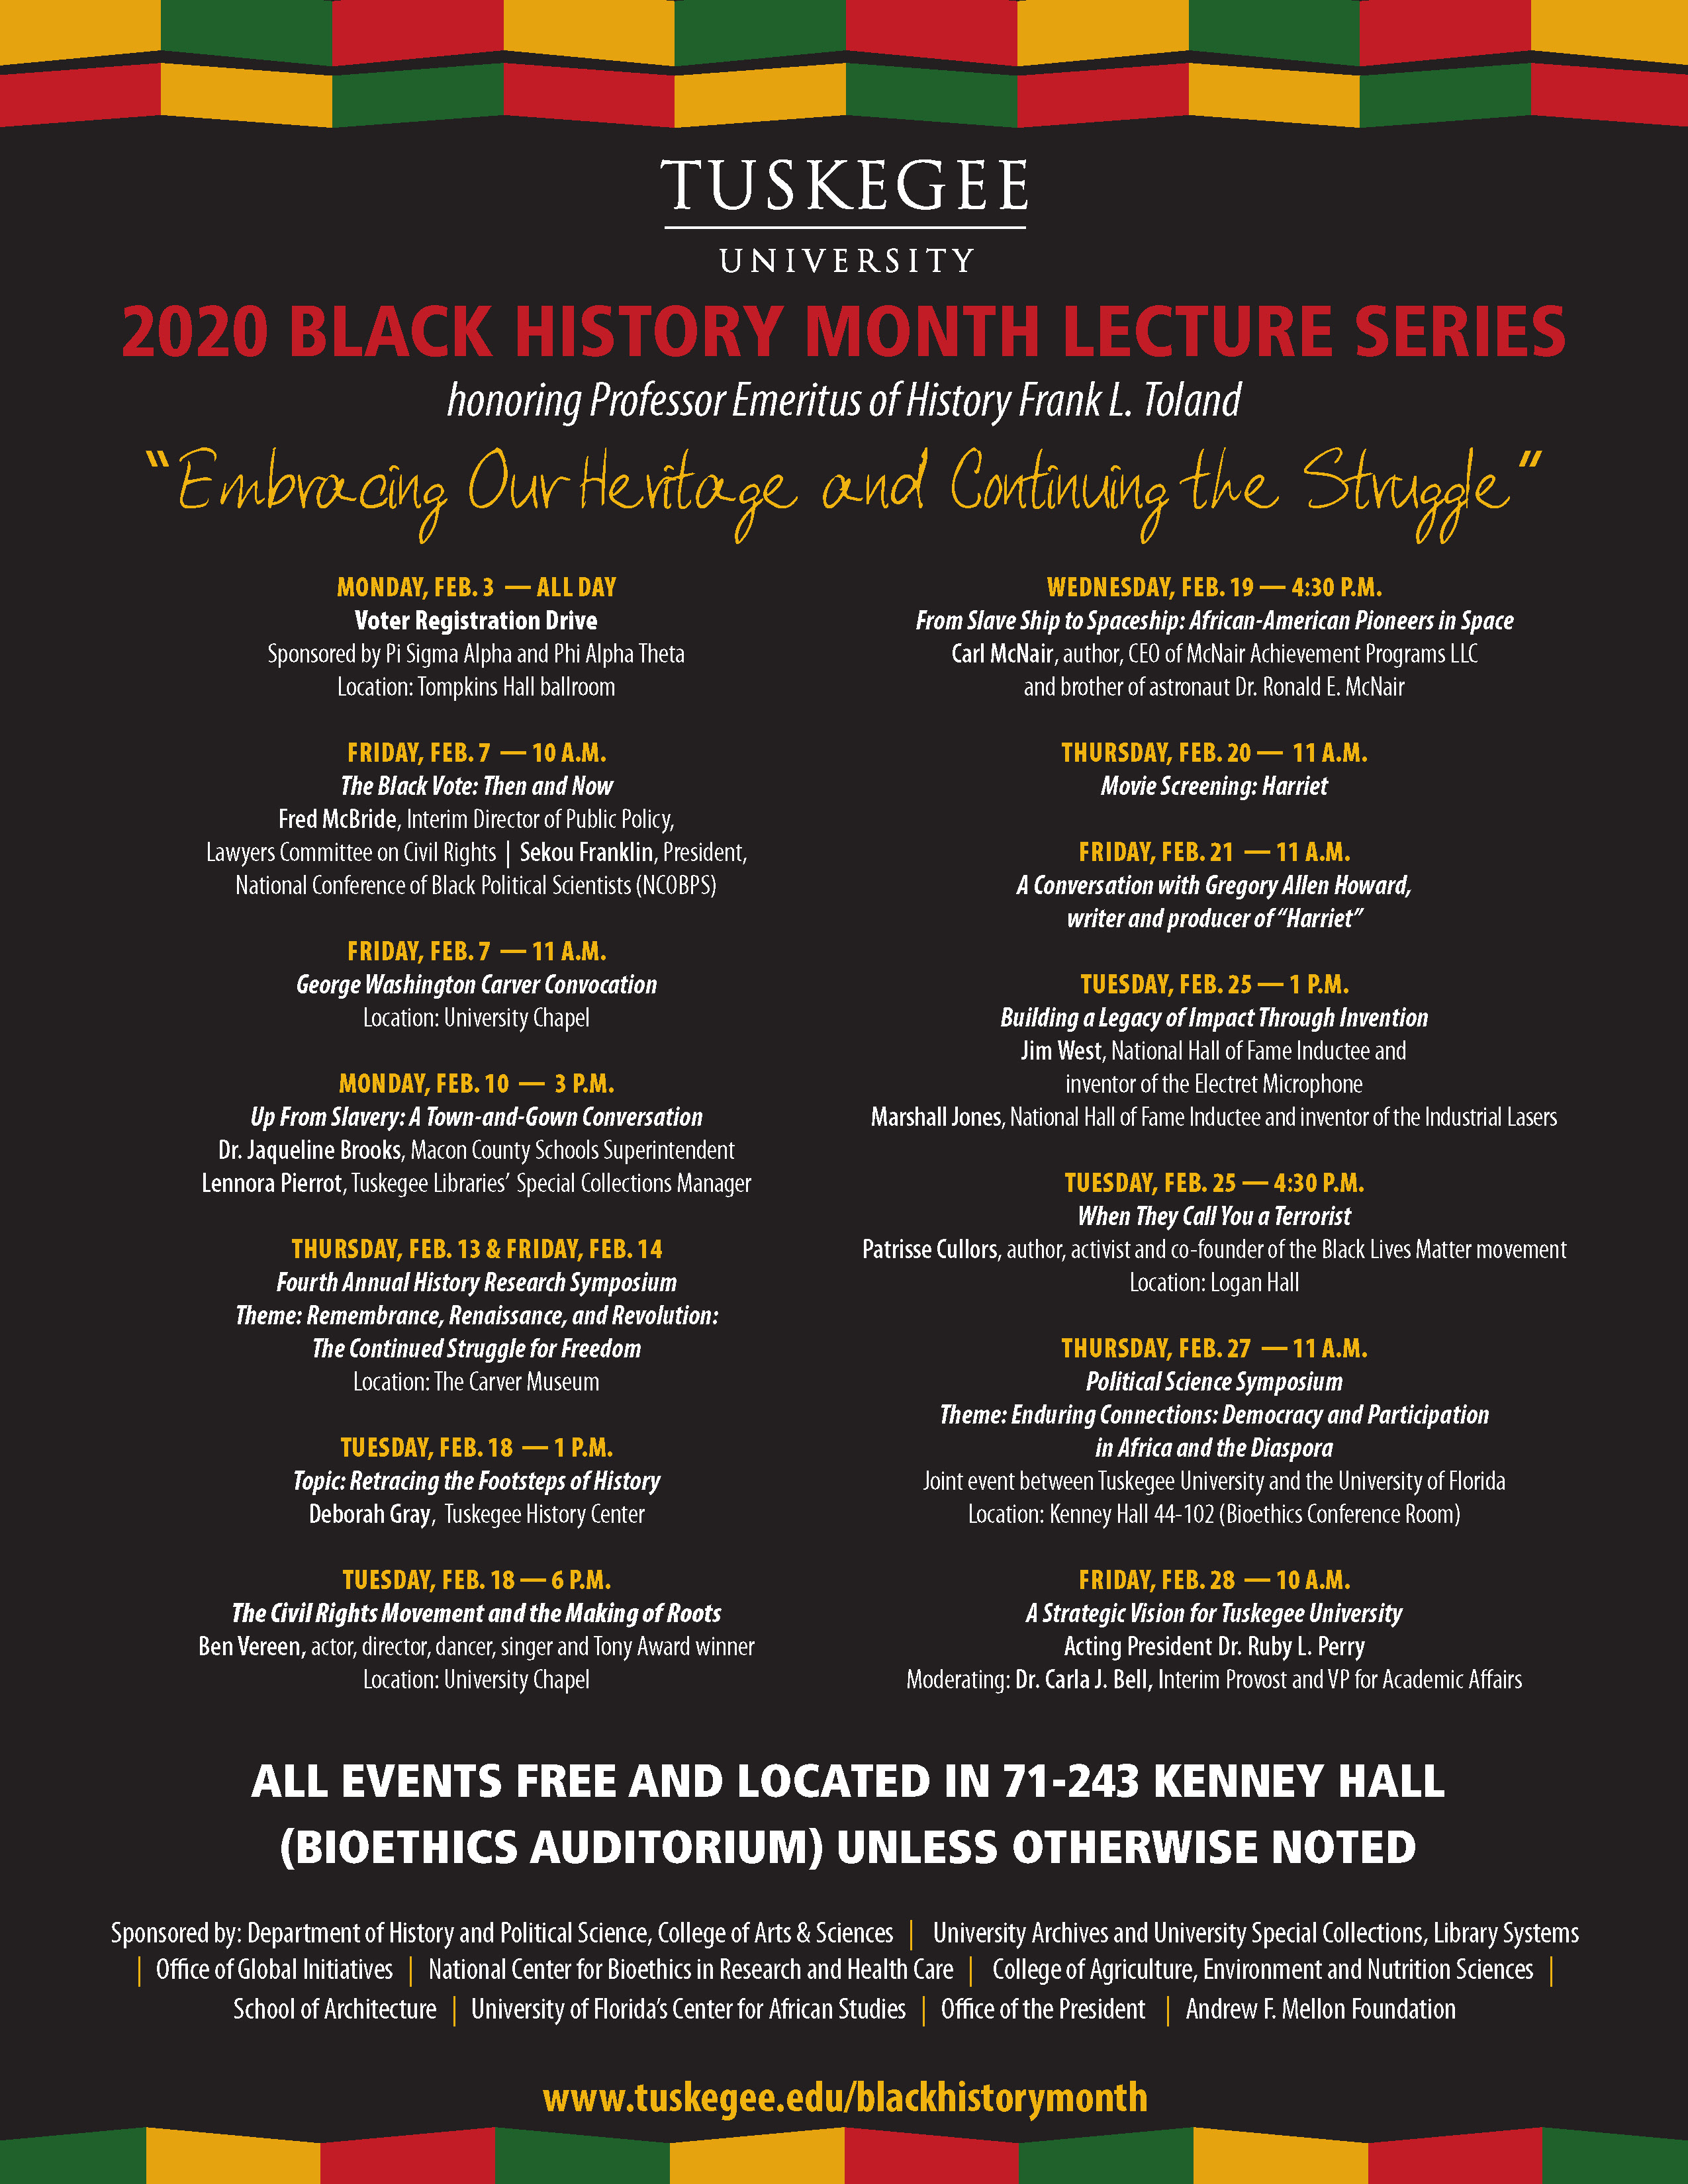 Black History Month Programs At Tuskegee University Embrace Heritage Continued Struggle Tuskegee University